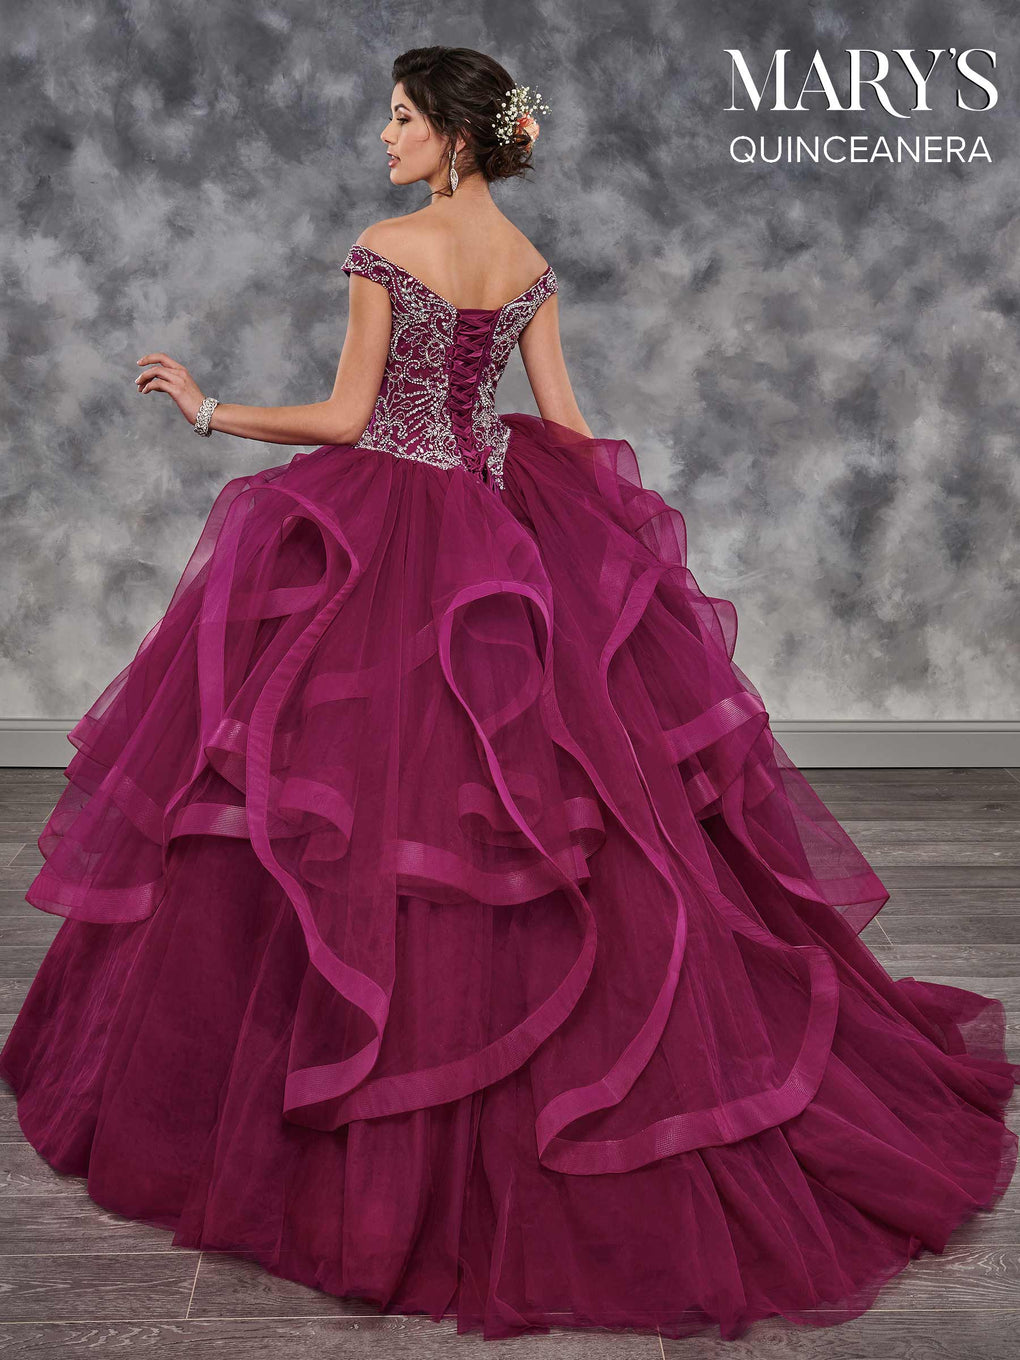 Marys Quinceanera Dresses in Champagne, Wildberry, or White Color